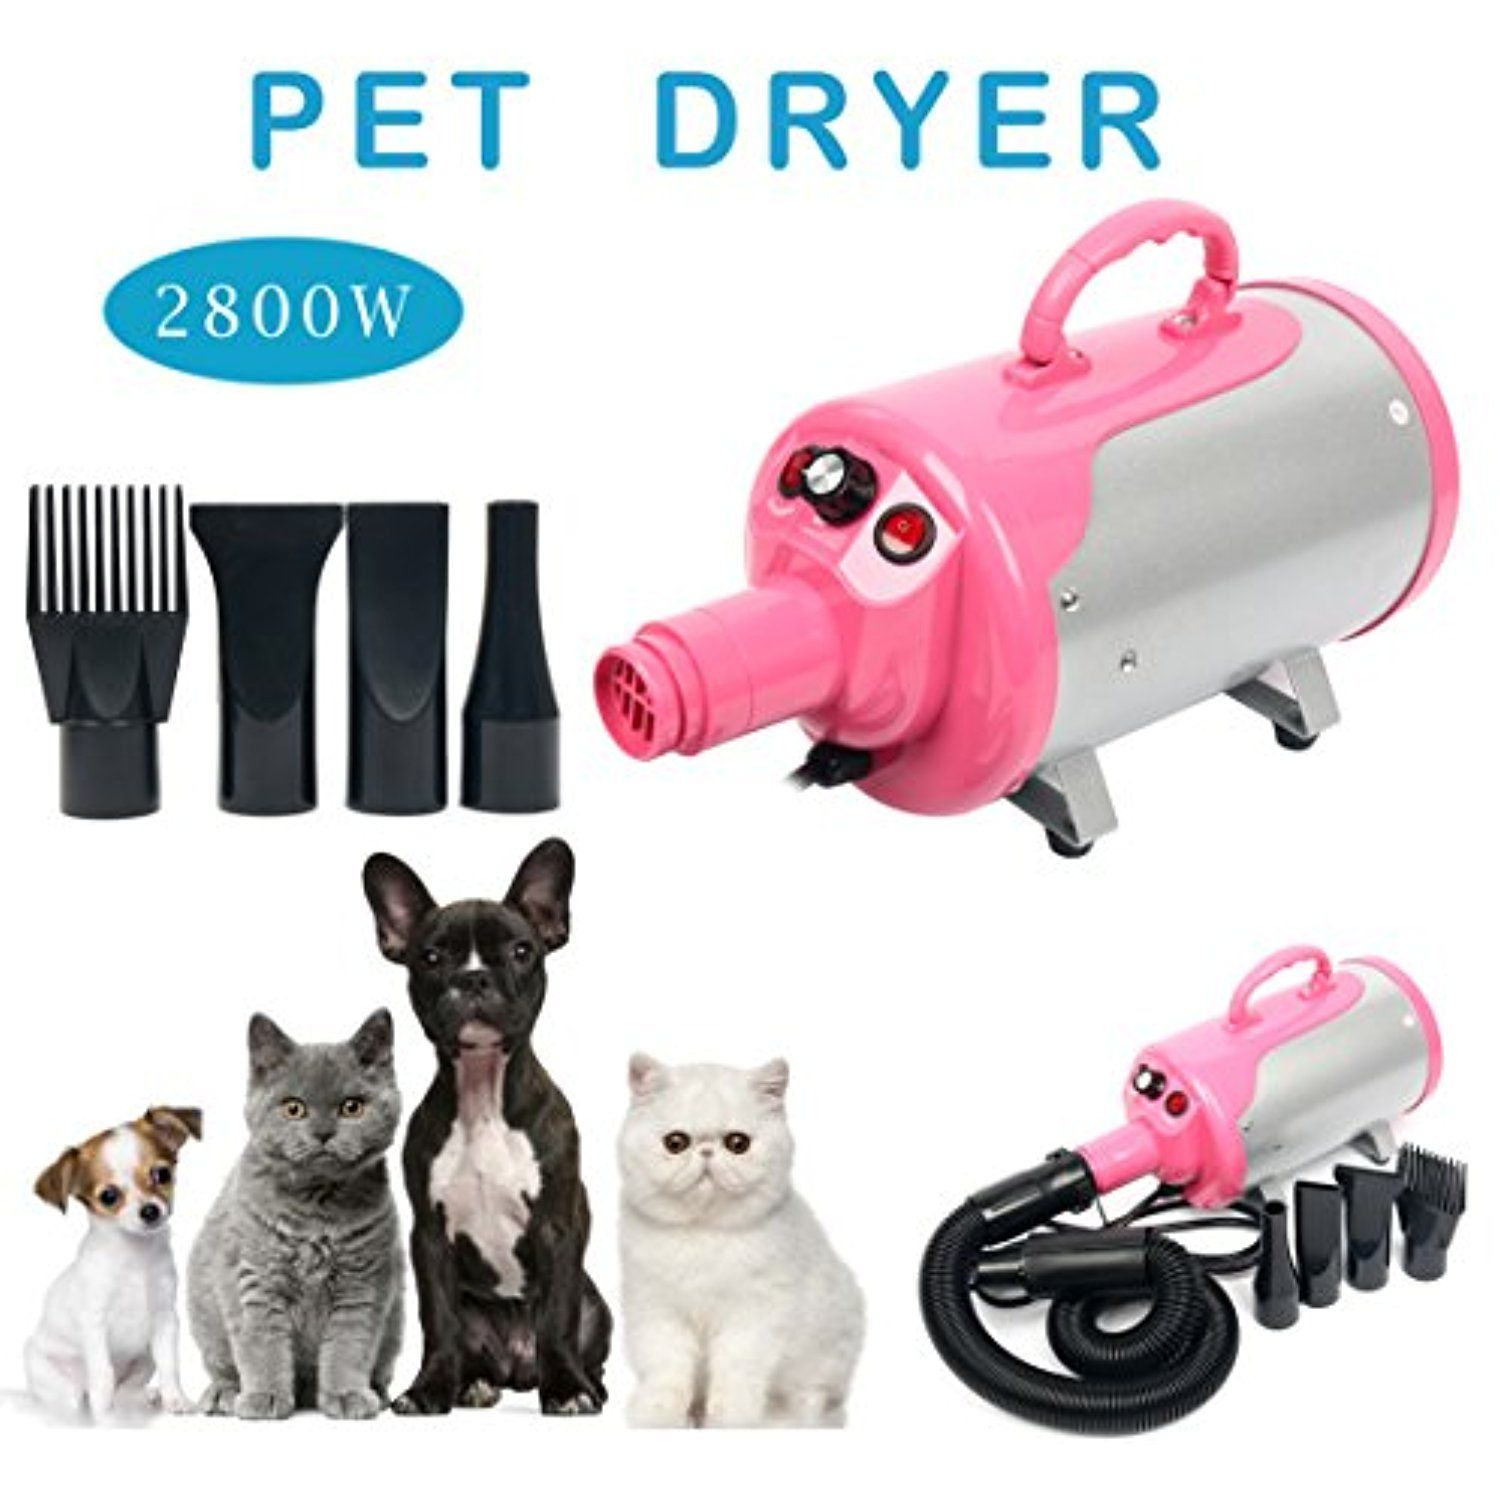 Portable Dog Cat Pet Grooming Dryer 2800w Salon Blow Hair Dryer Quick Draw Hairdryer with Different 4 Nozzles Pet Hairdryer Machine Set (Pink) ** More info could be found at the image url. (This is an affiliate link) #Dogs